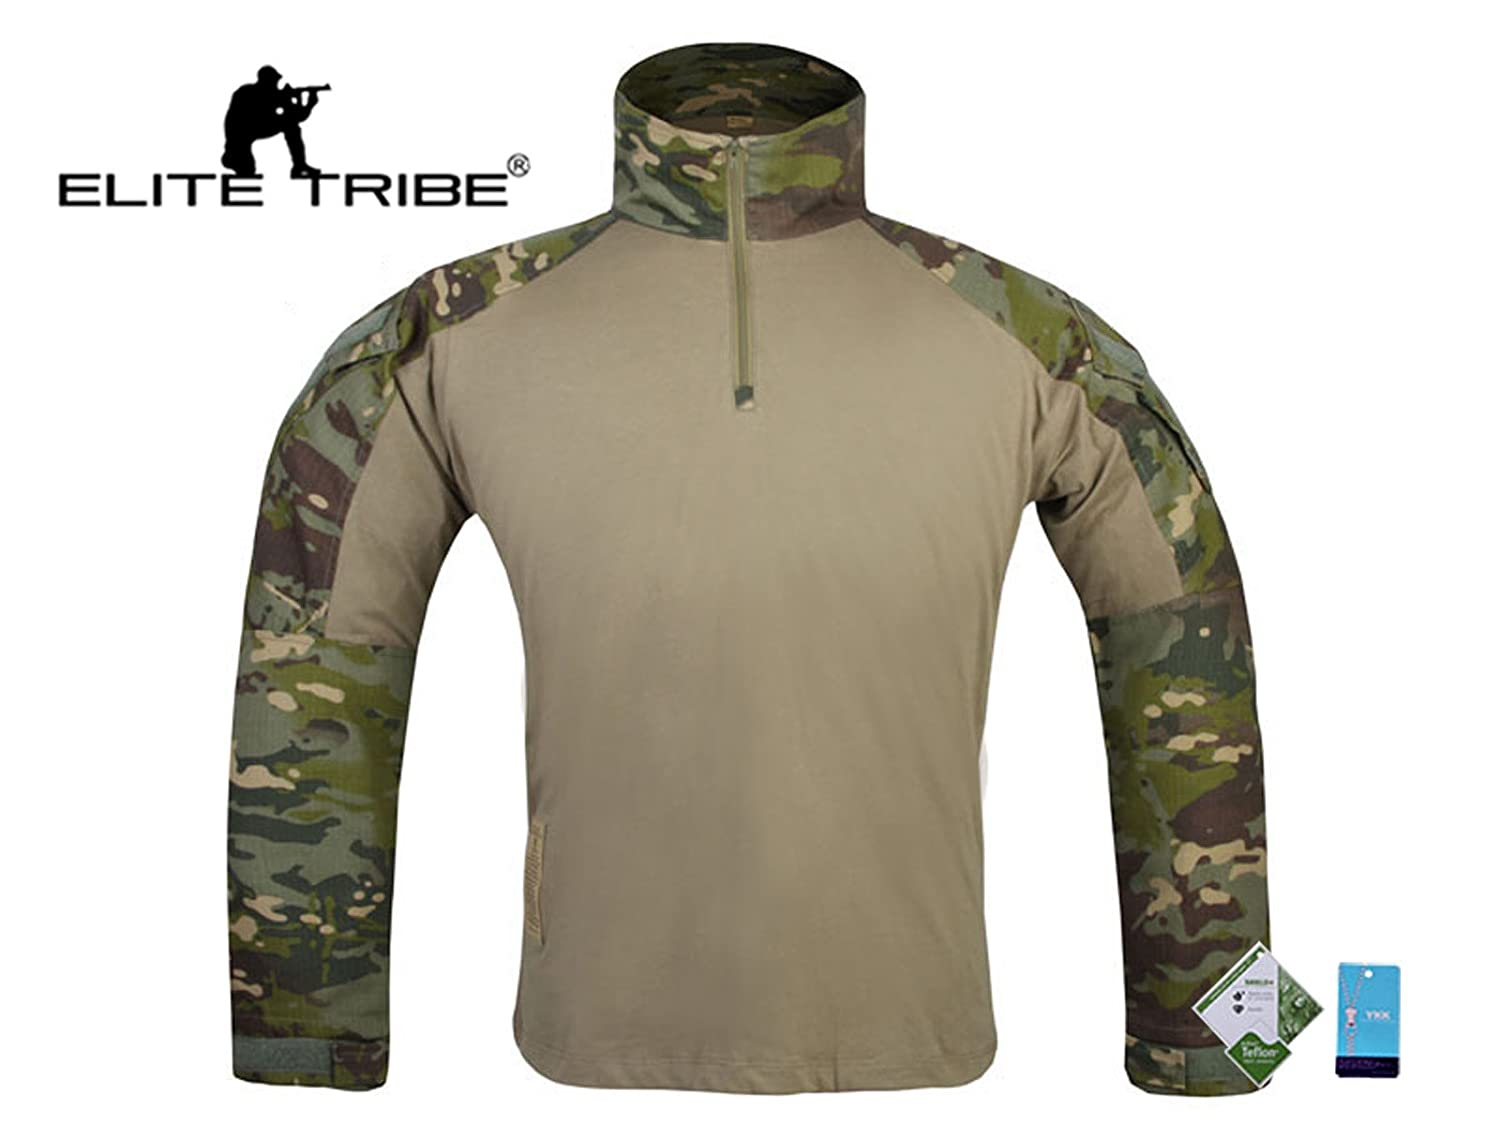 airsoft caza táctico camisa combate Gen3 camisa Multicam Tropic Tactical Outdoor